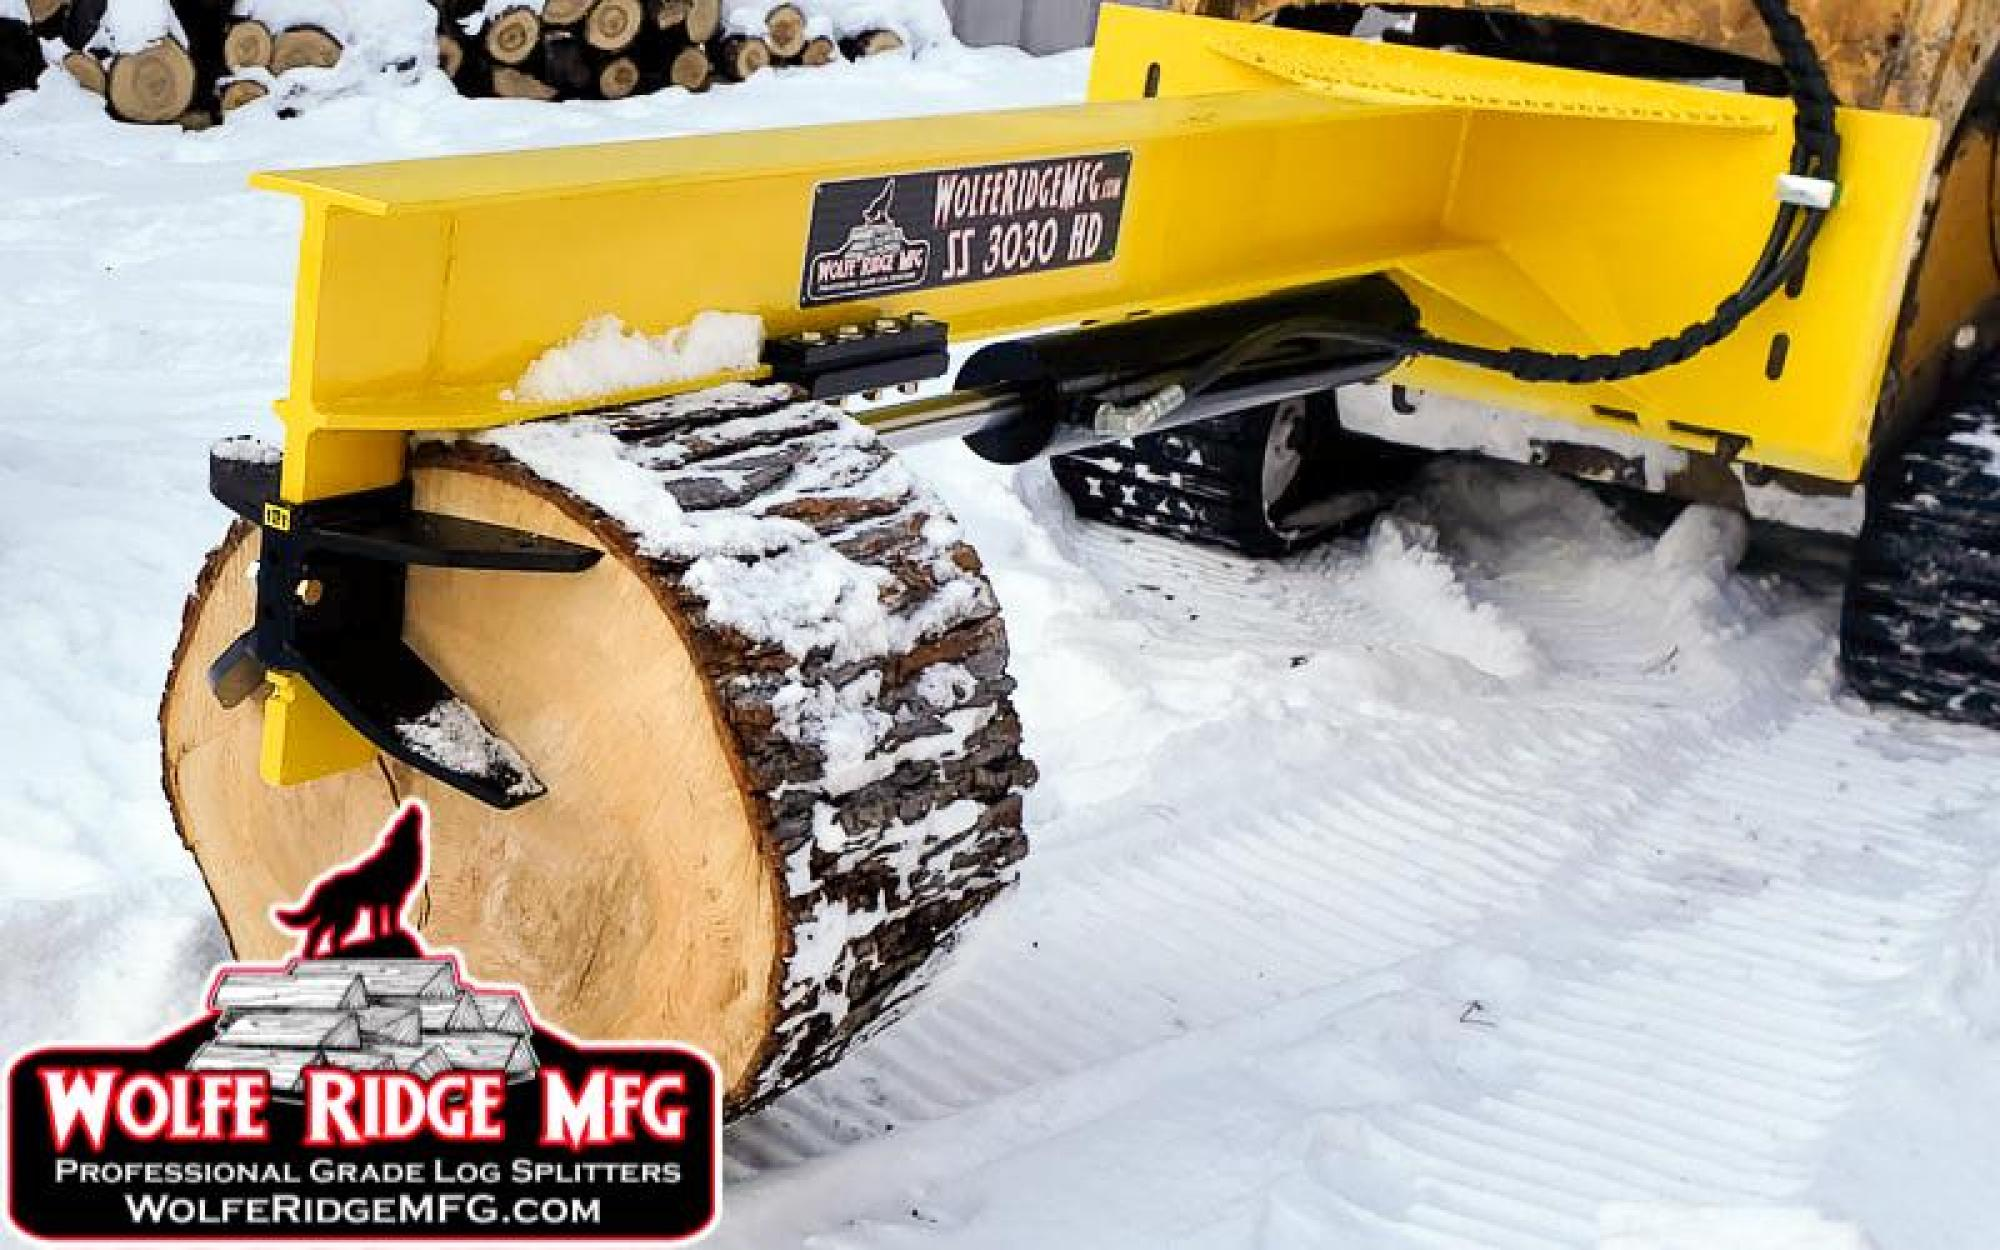 Wolfe Ridge MFG Skid Steer Attachments Inverted Log Splitter